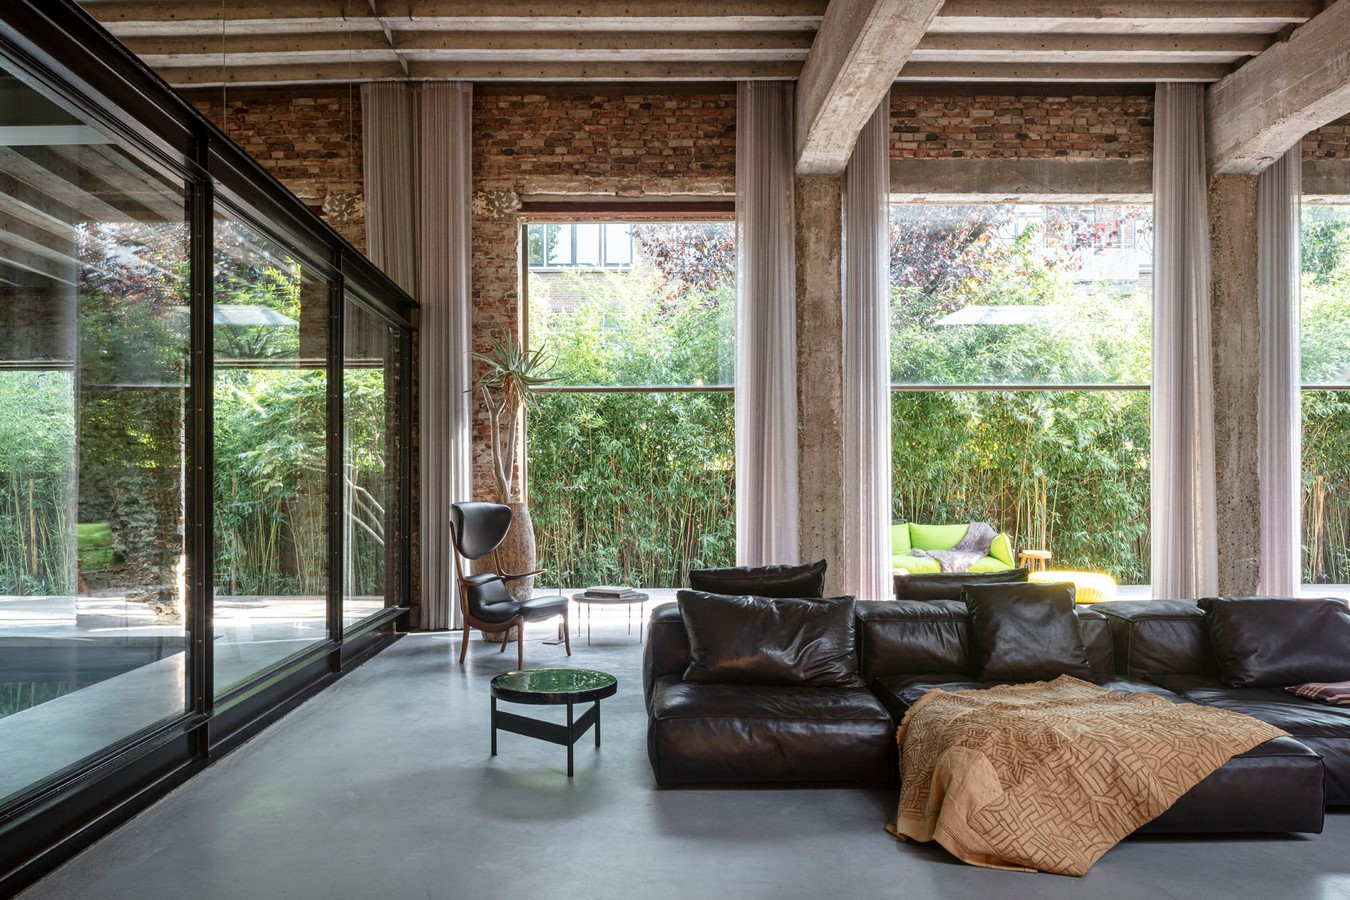 Abandoned 1940s Sports Building converted into New Villa With Naked Brick Walls by MASA Architects - Sheet3